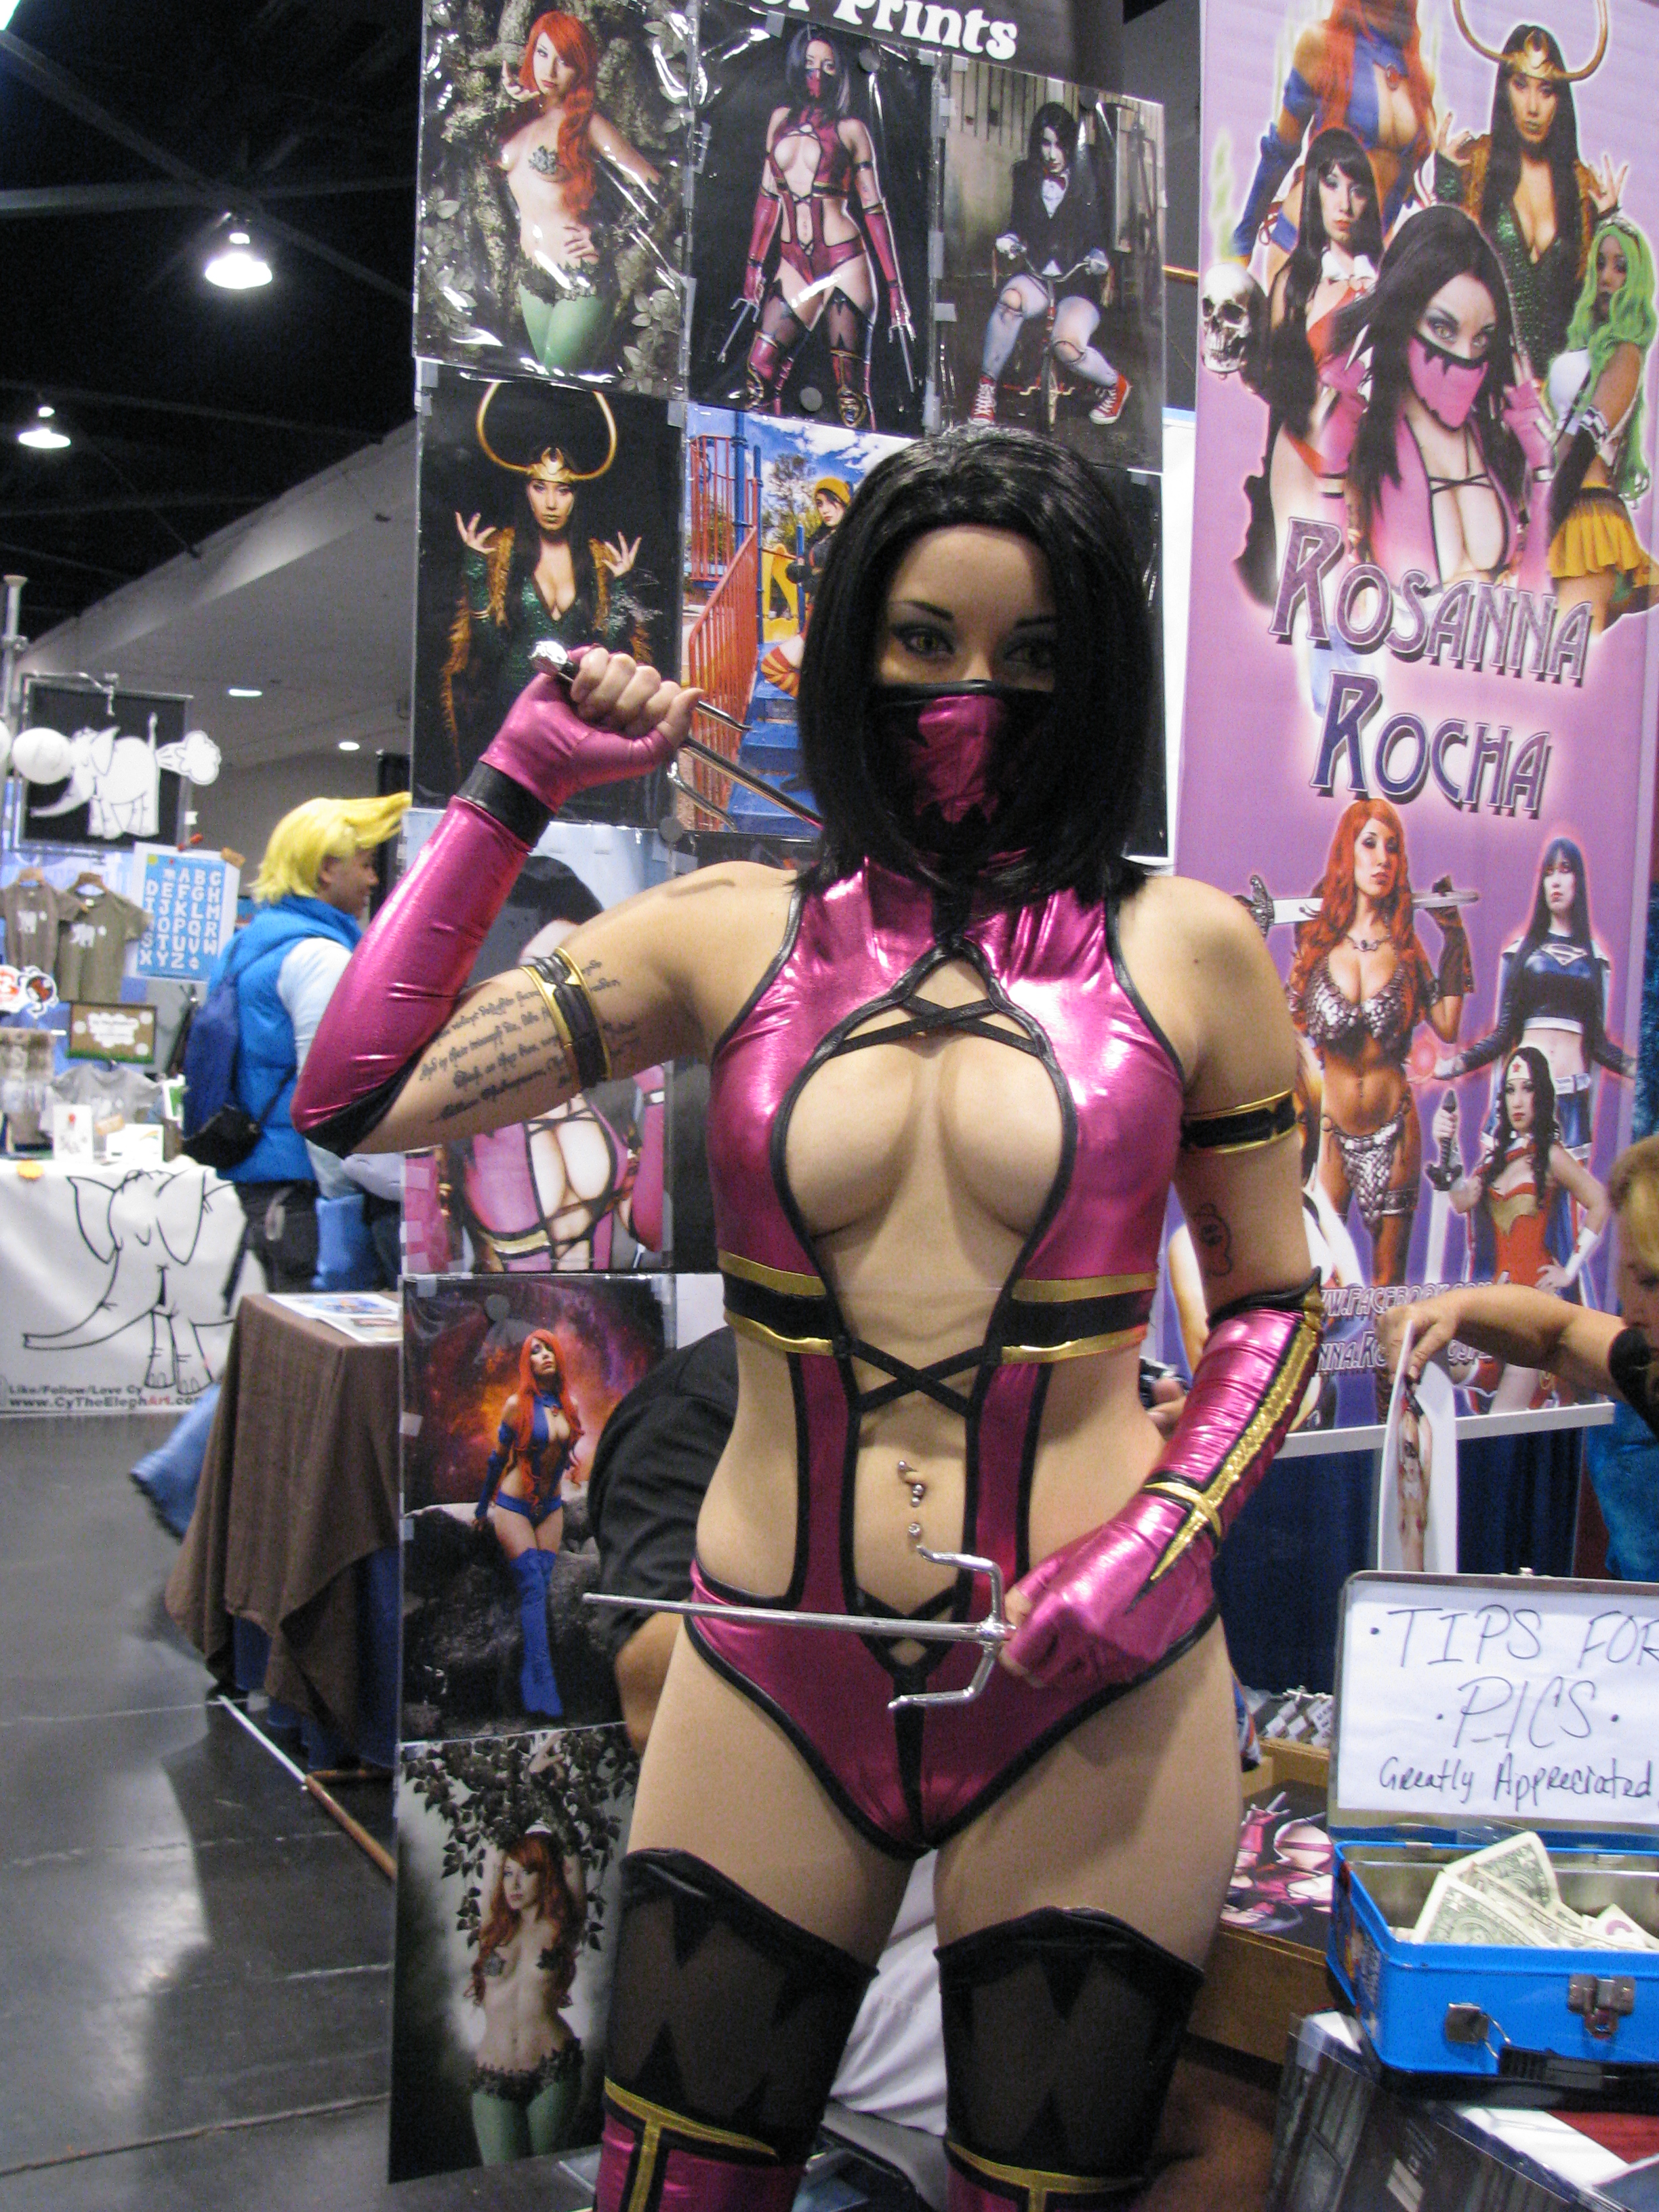 Mileena nua mortal adult woman